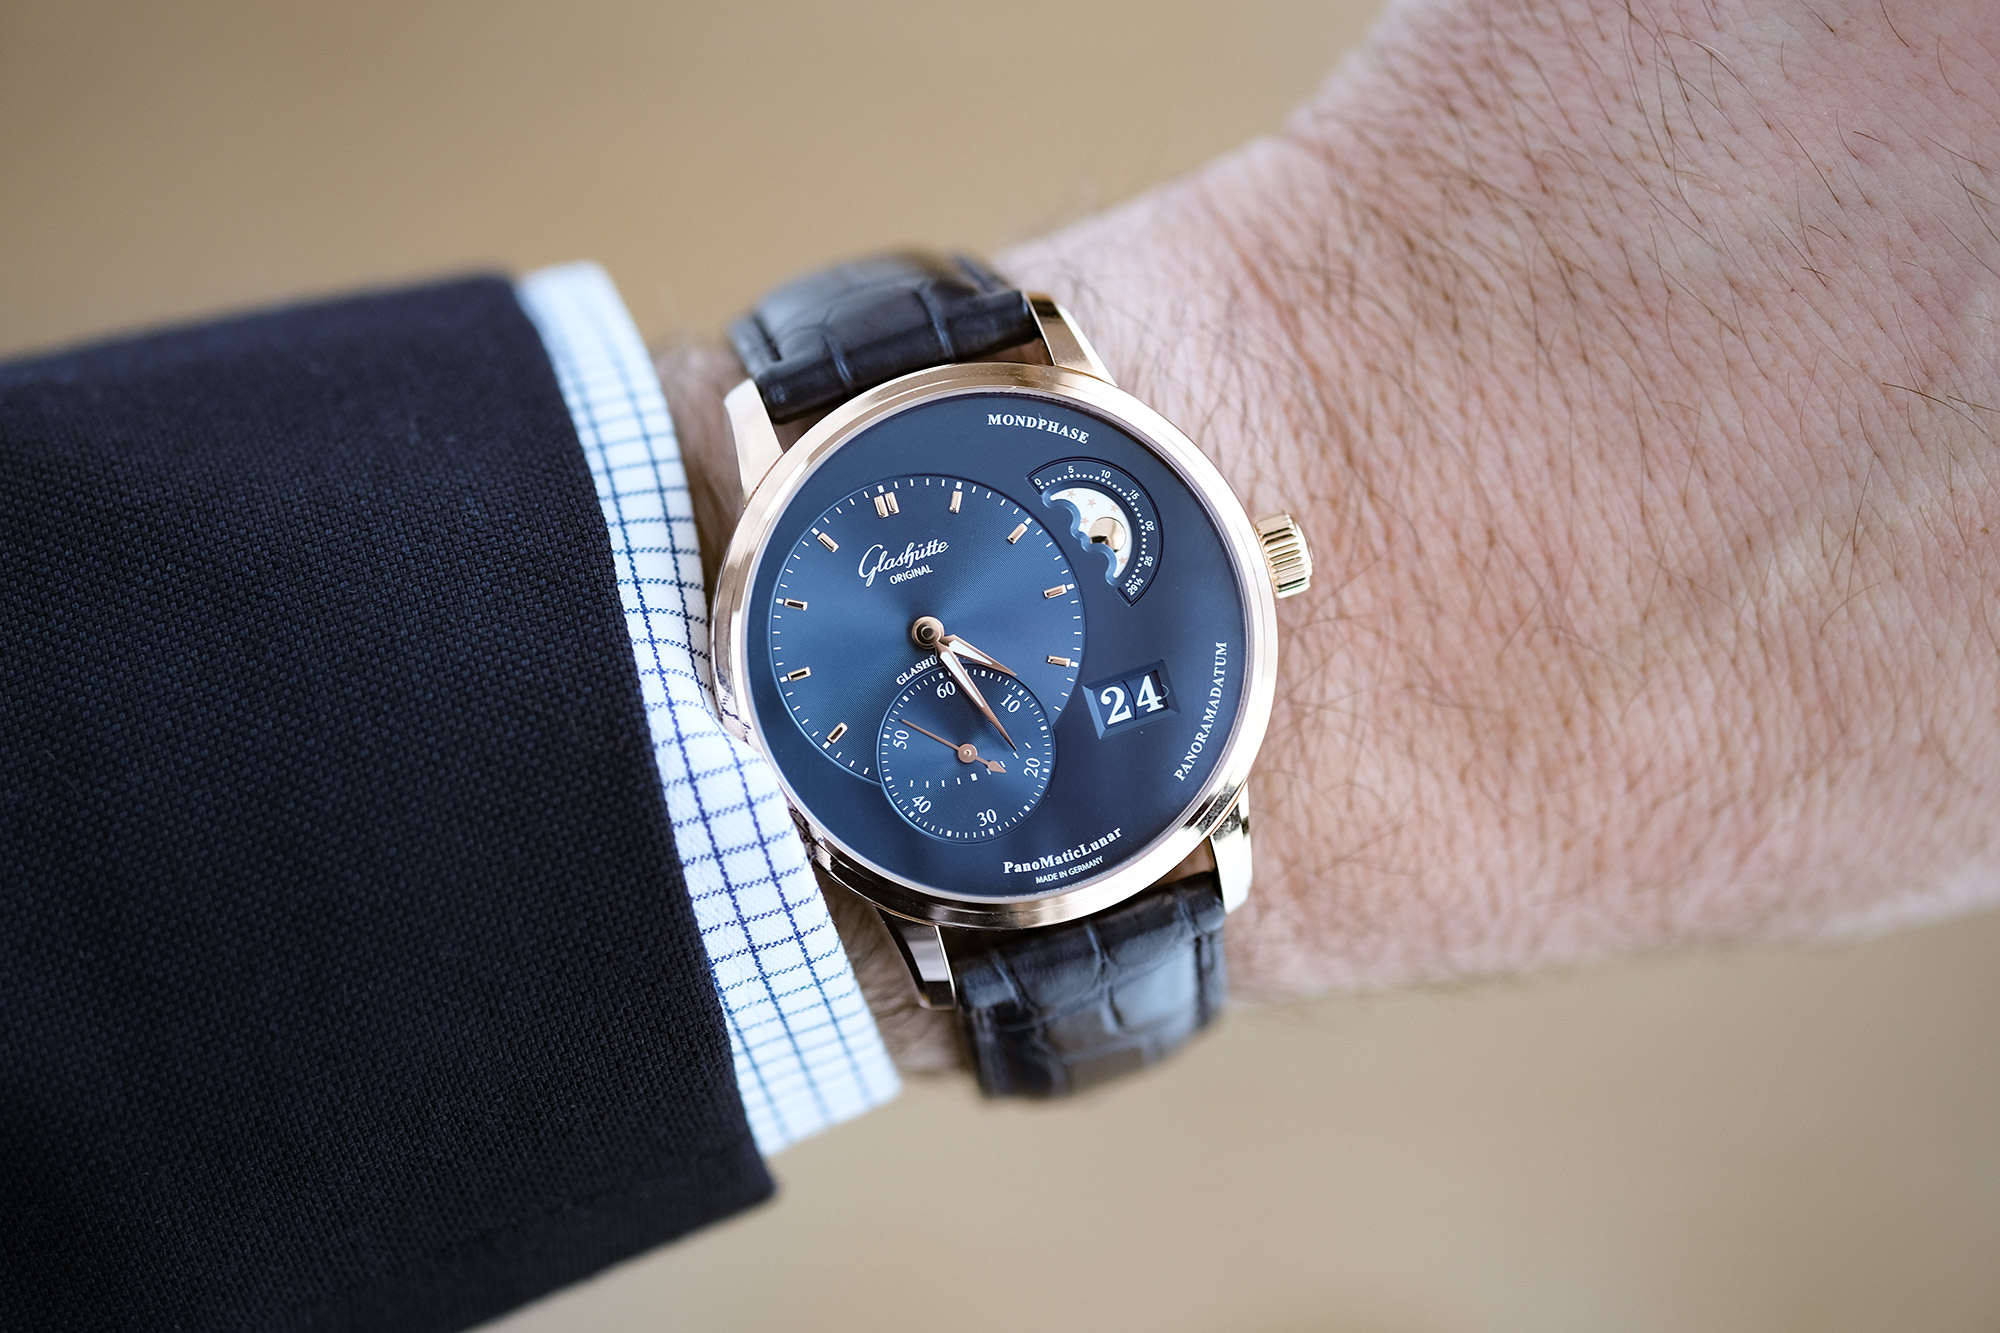 Hands On Glashutte Original Panomaticlunar Video Atelier De Griff